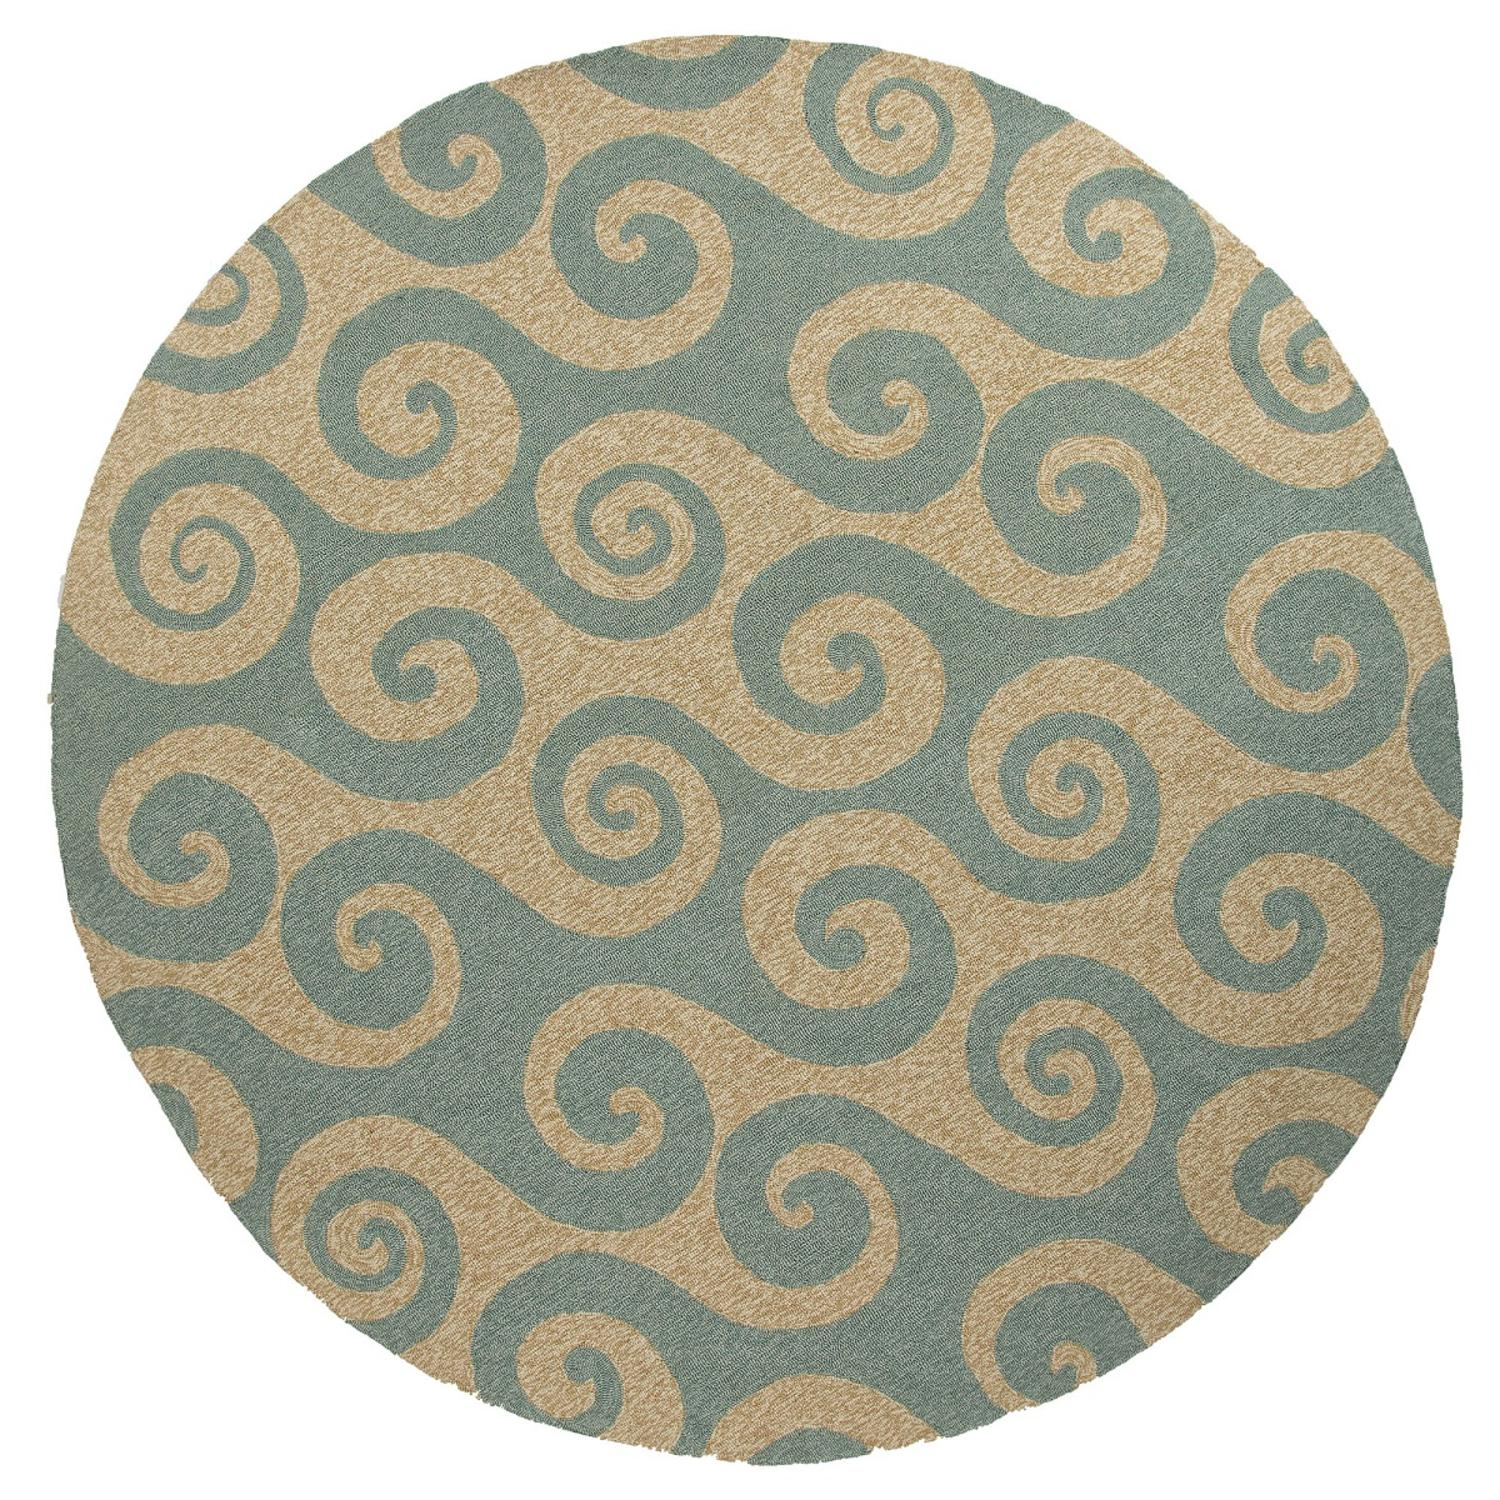 8' Light Blue and Sandy Tan Wave Hello Round Outdoor Area Throw Rug